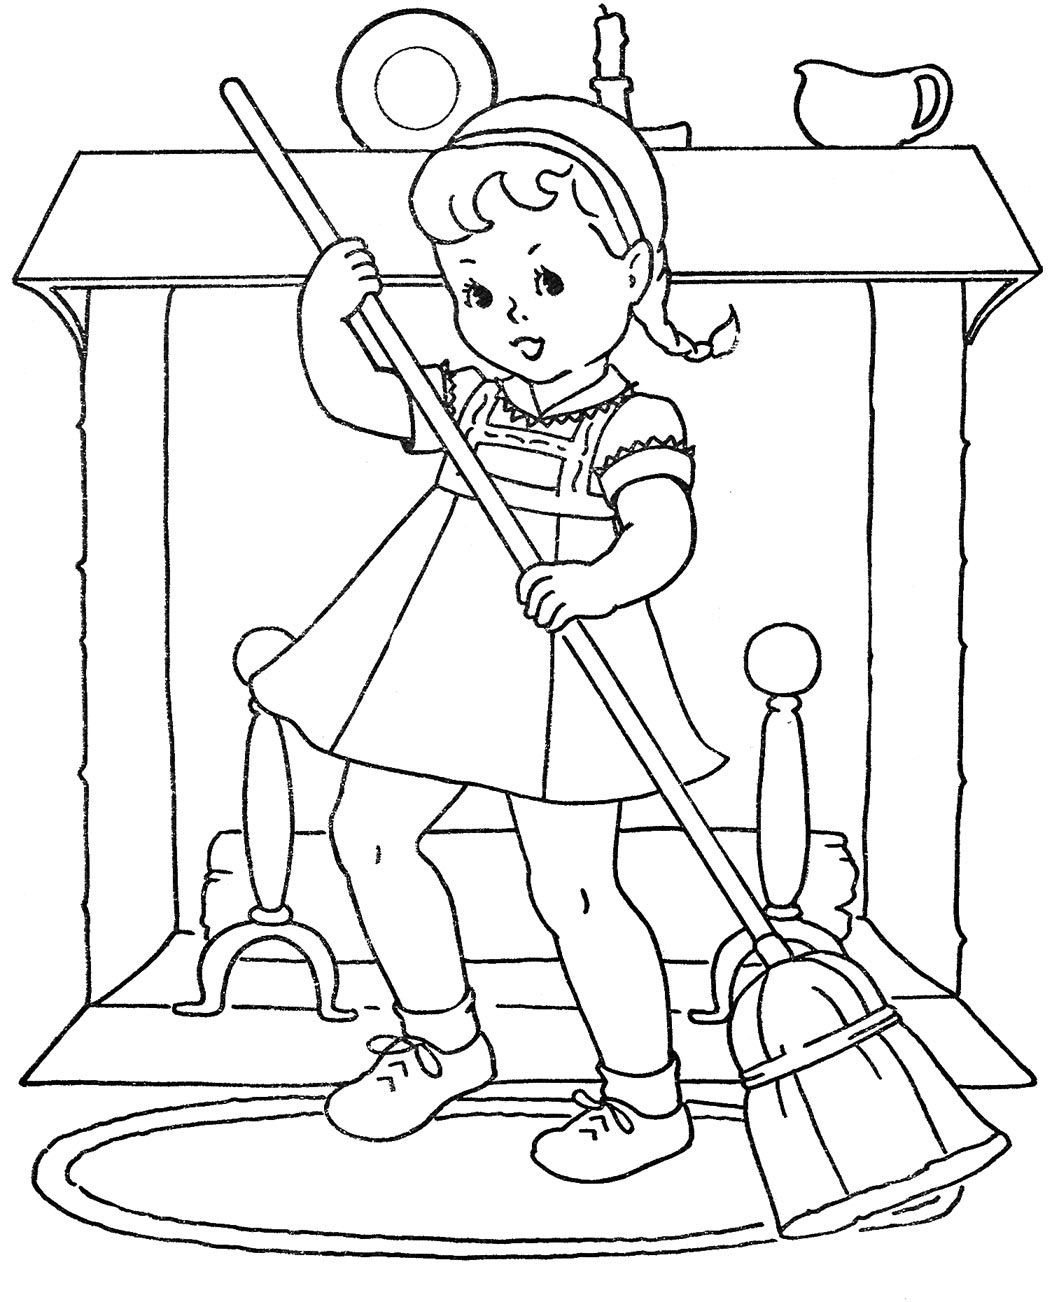 Belznickle Blogspot : Coloring Pictures of Vintage Baby Dolls | 1302x1052